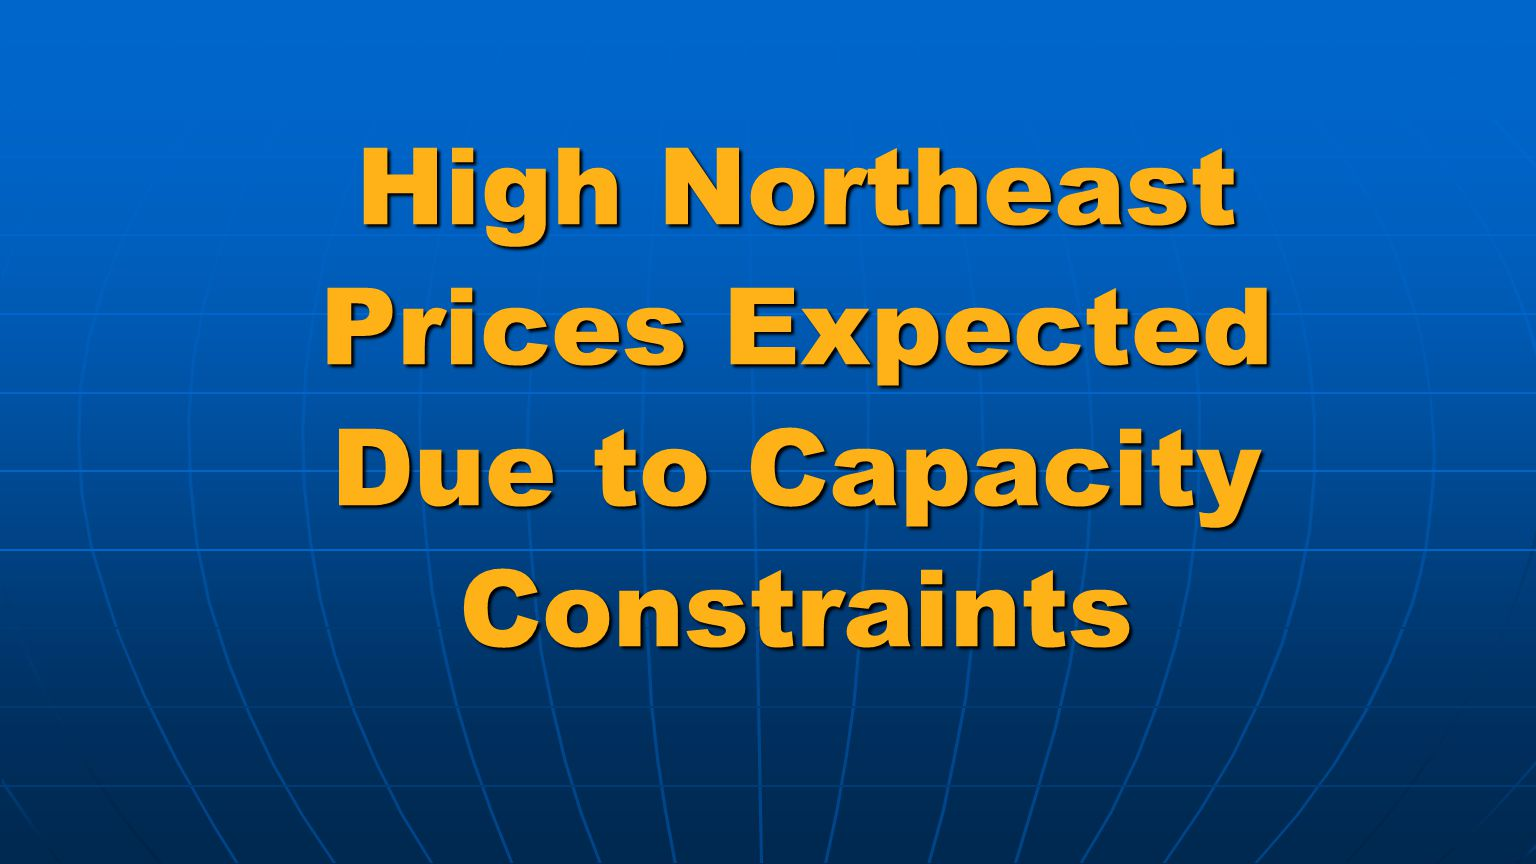 High Northeast Prices Expected Due to Capacity Constraints